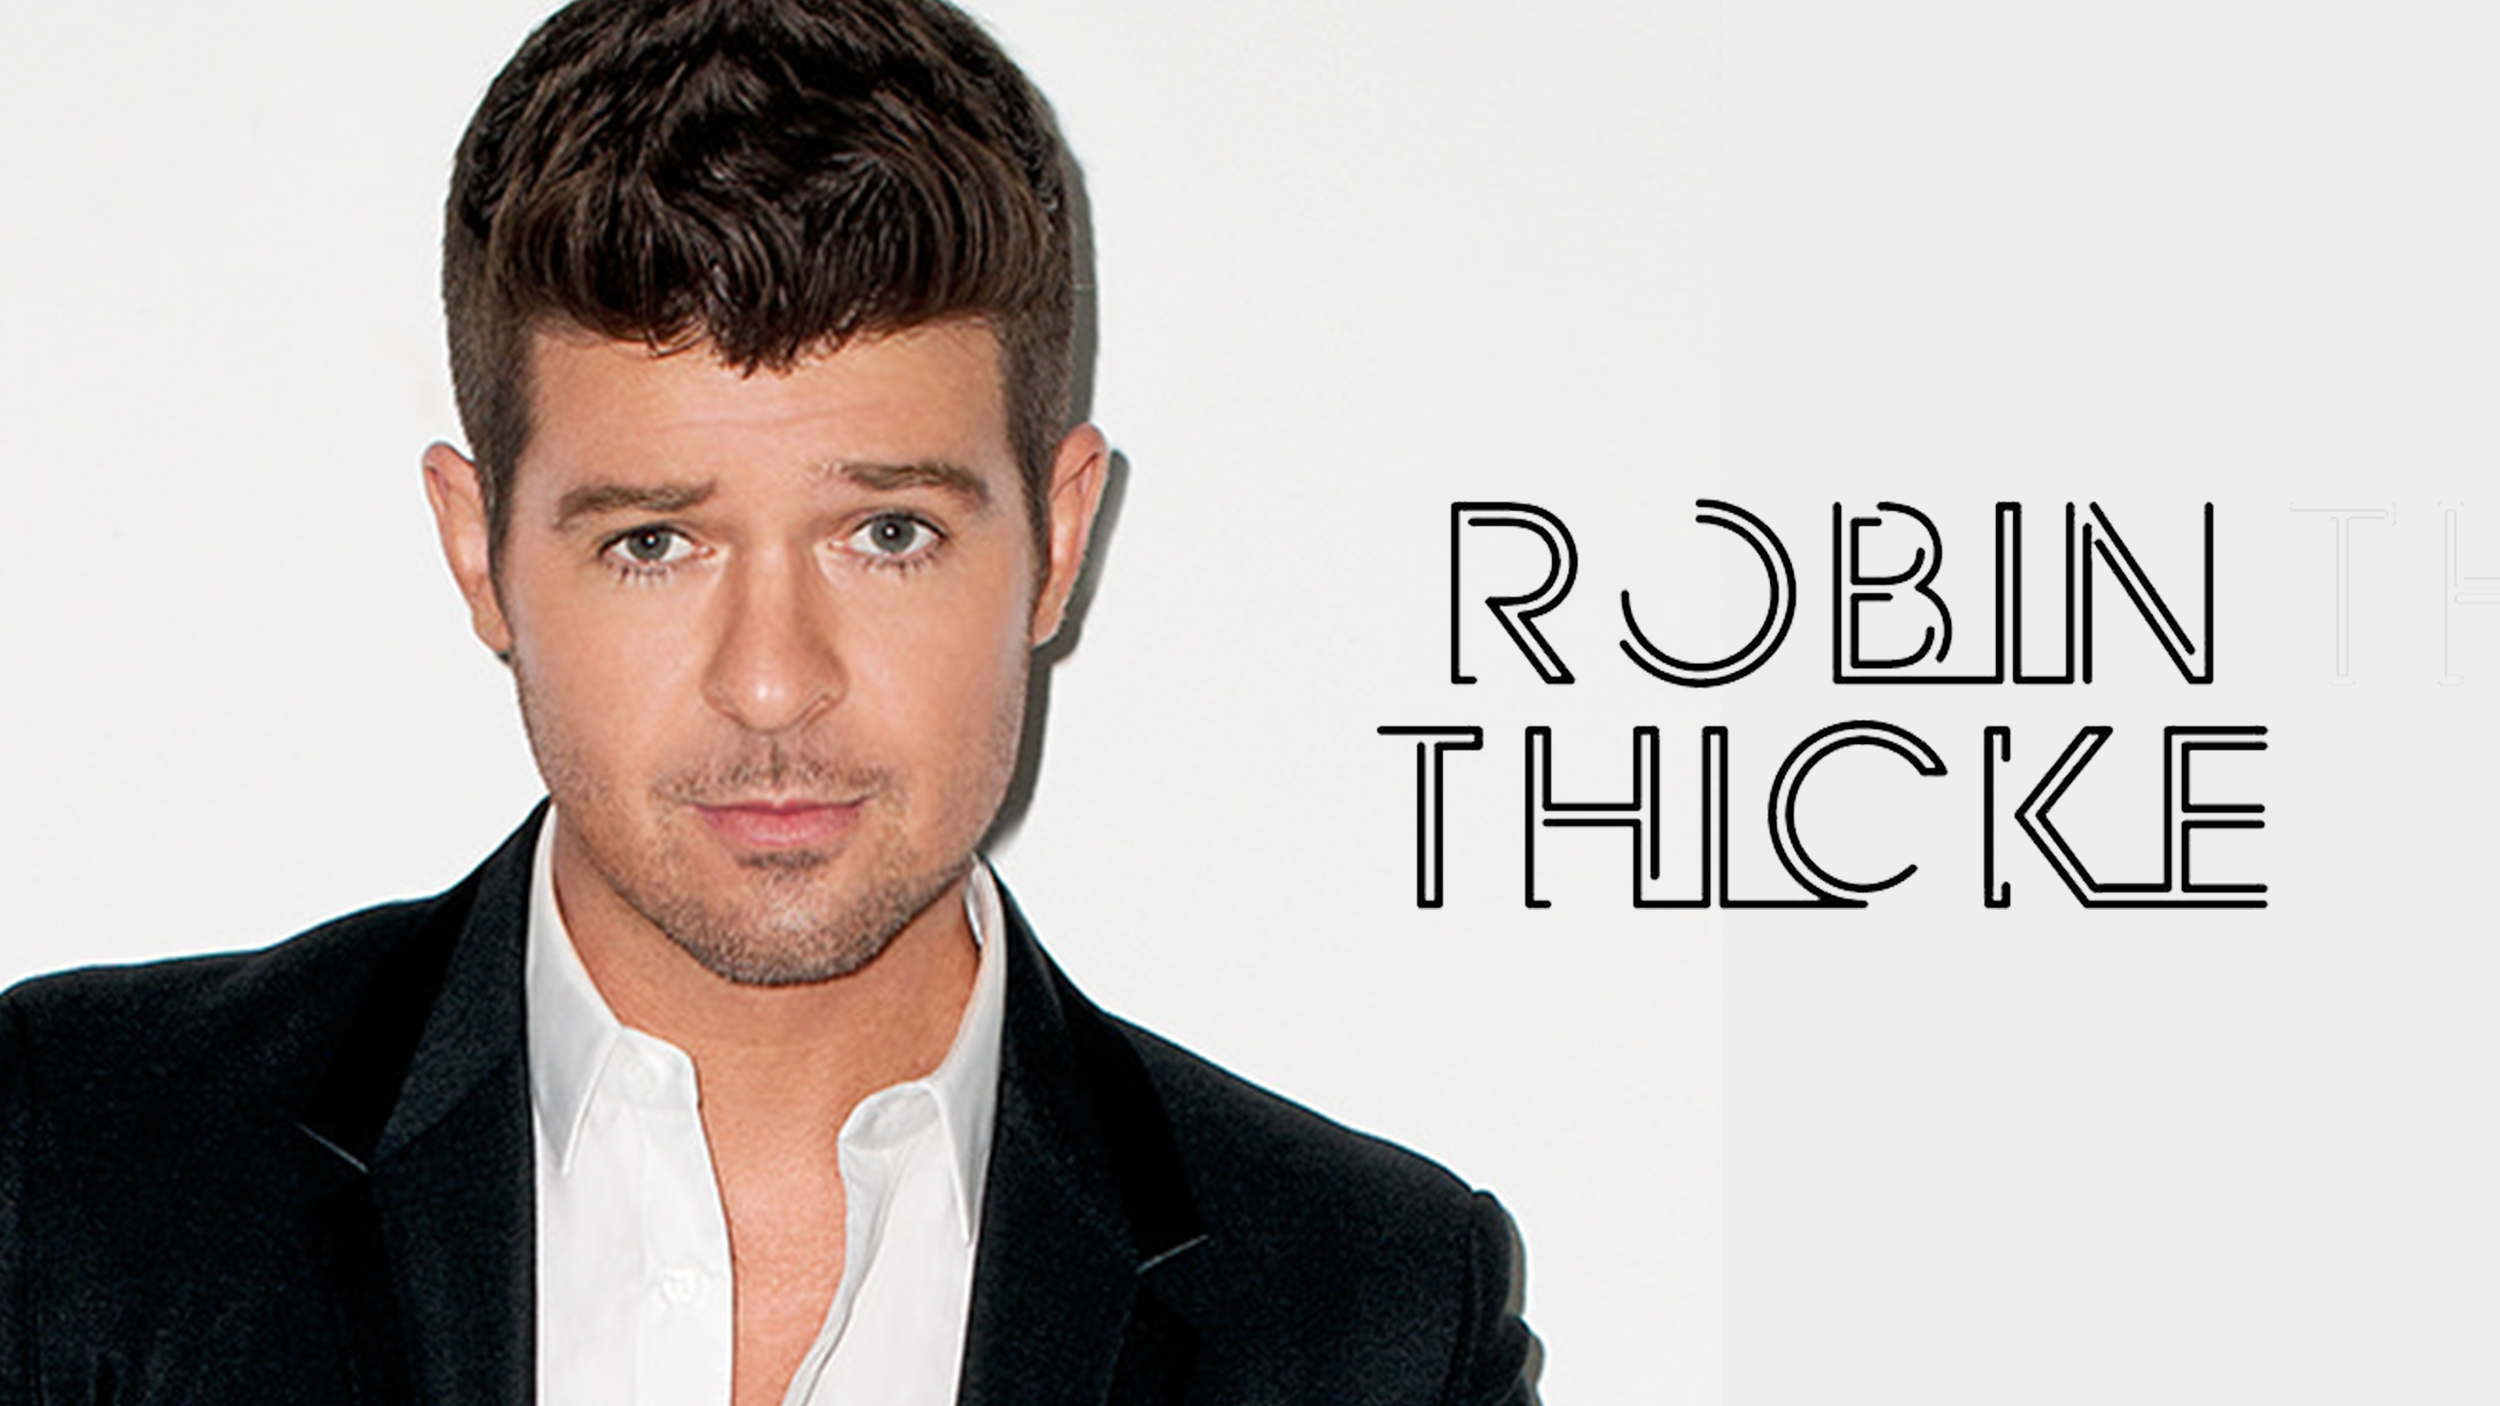 Robin-Thicke.png